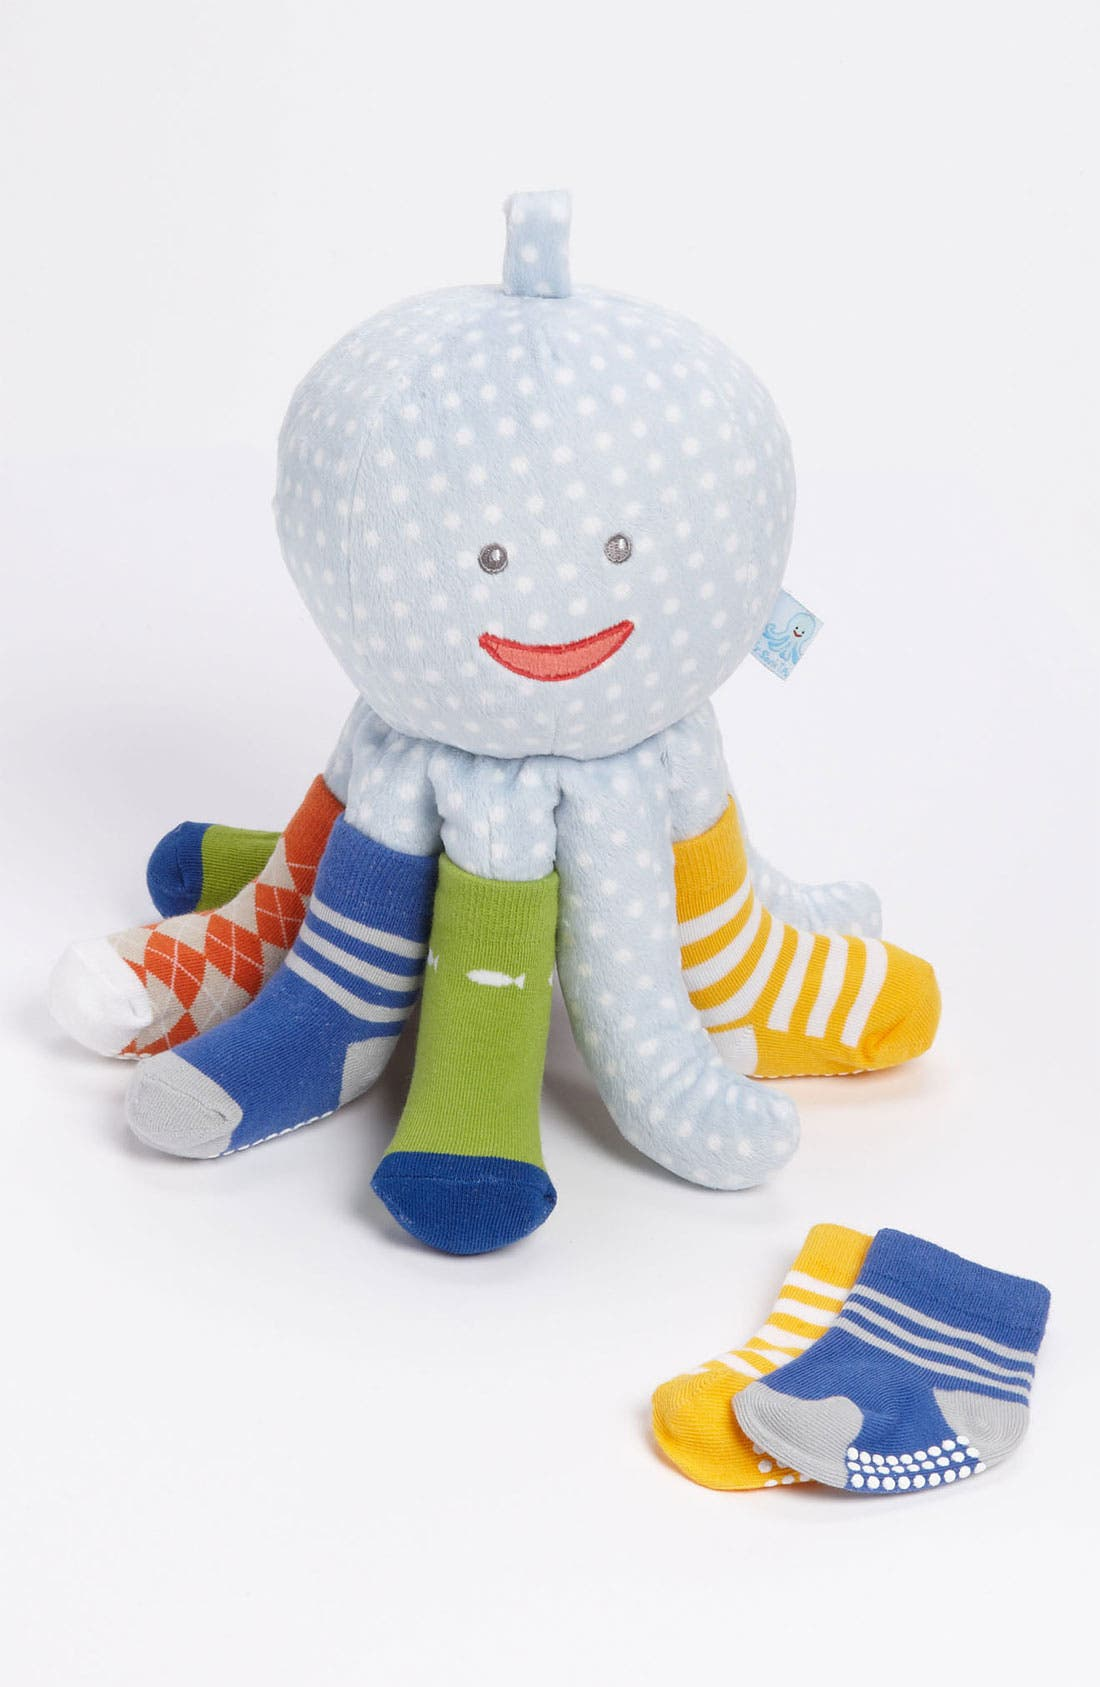 Alternate Image 1 Selected - Baby Aspen 'Mr. Sock T. Pus' Stuffed Animal & Socks (4-Pack) (Infant)